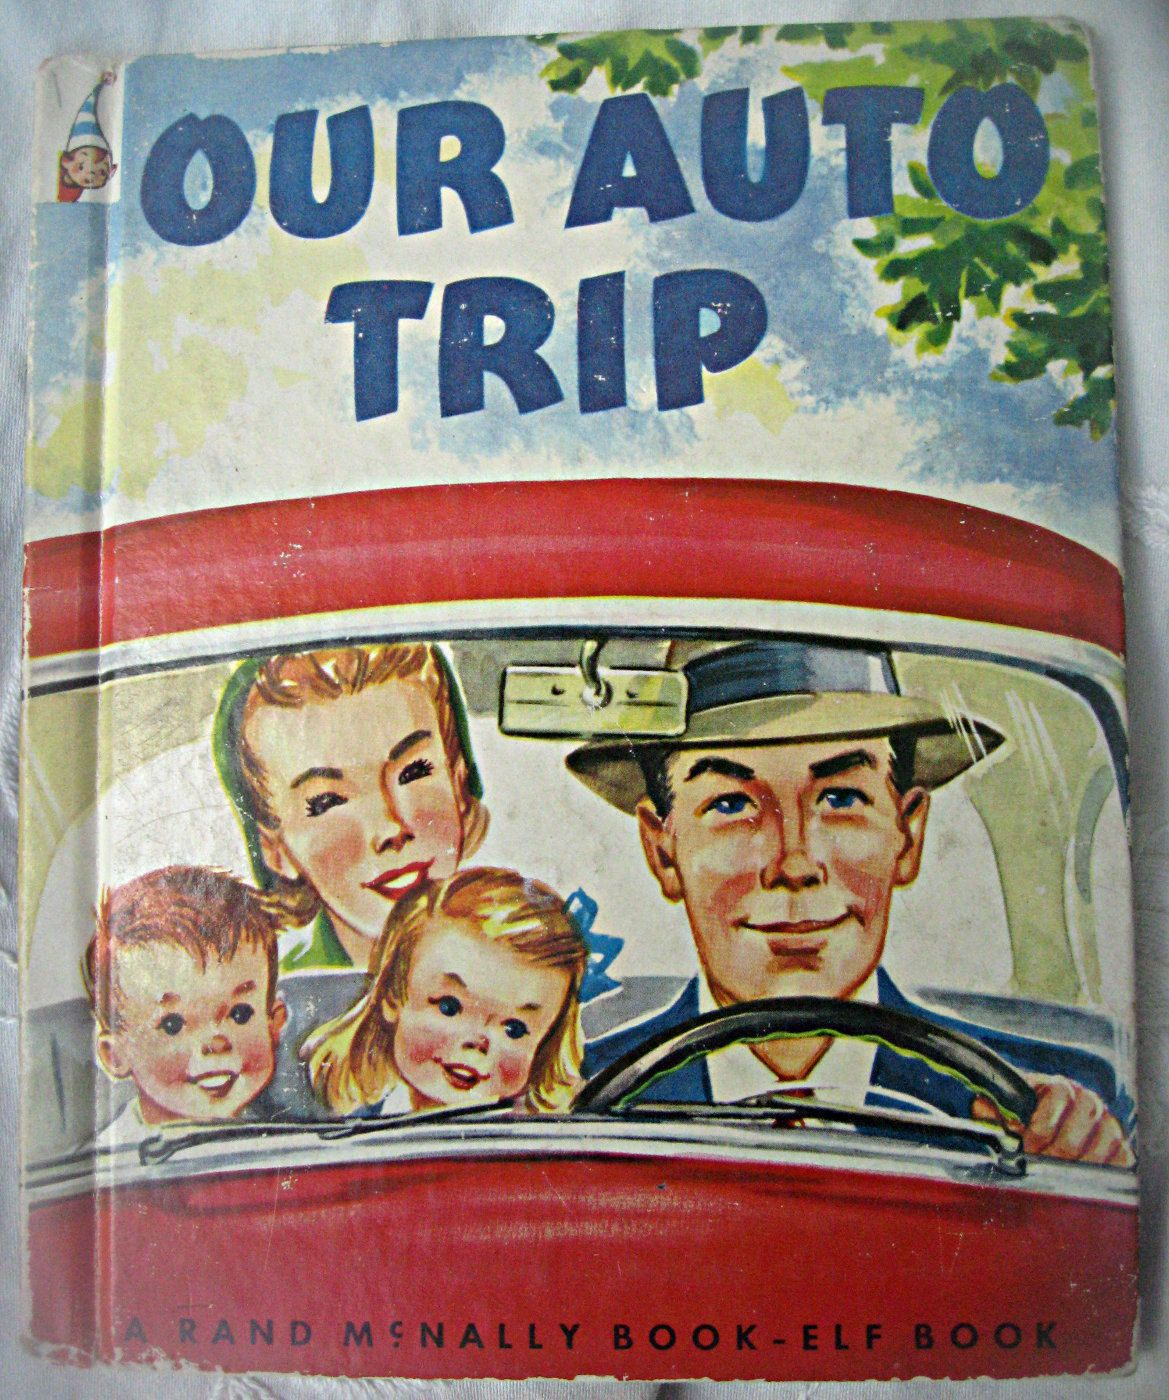 Vintage child's book, Our Auto Trip, road trip book, rand mcnally book elf book, illustrated book, car trip book, family car trip book by LittleBeachDesigns on Etsy